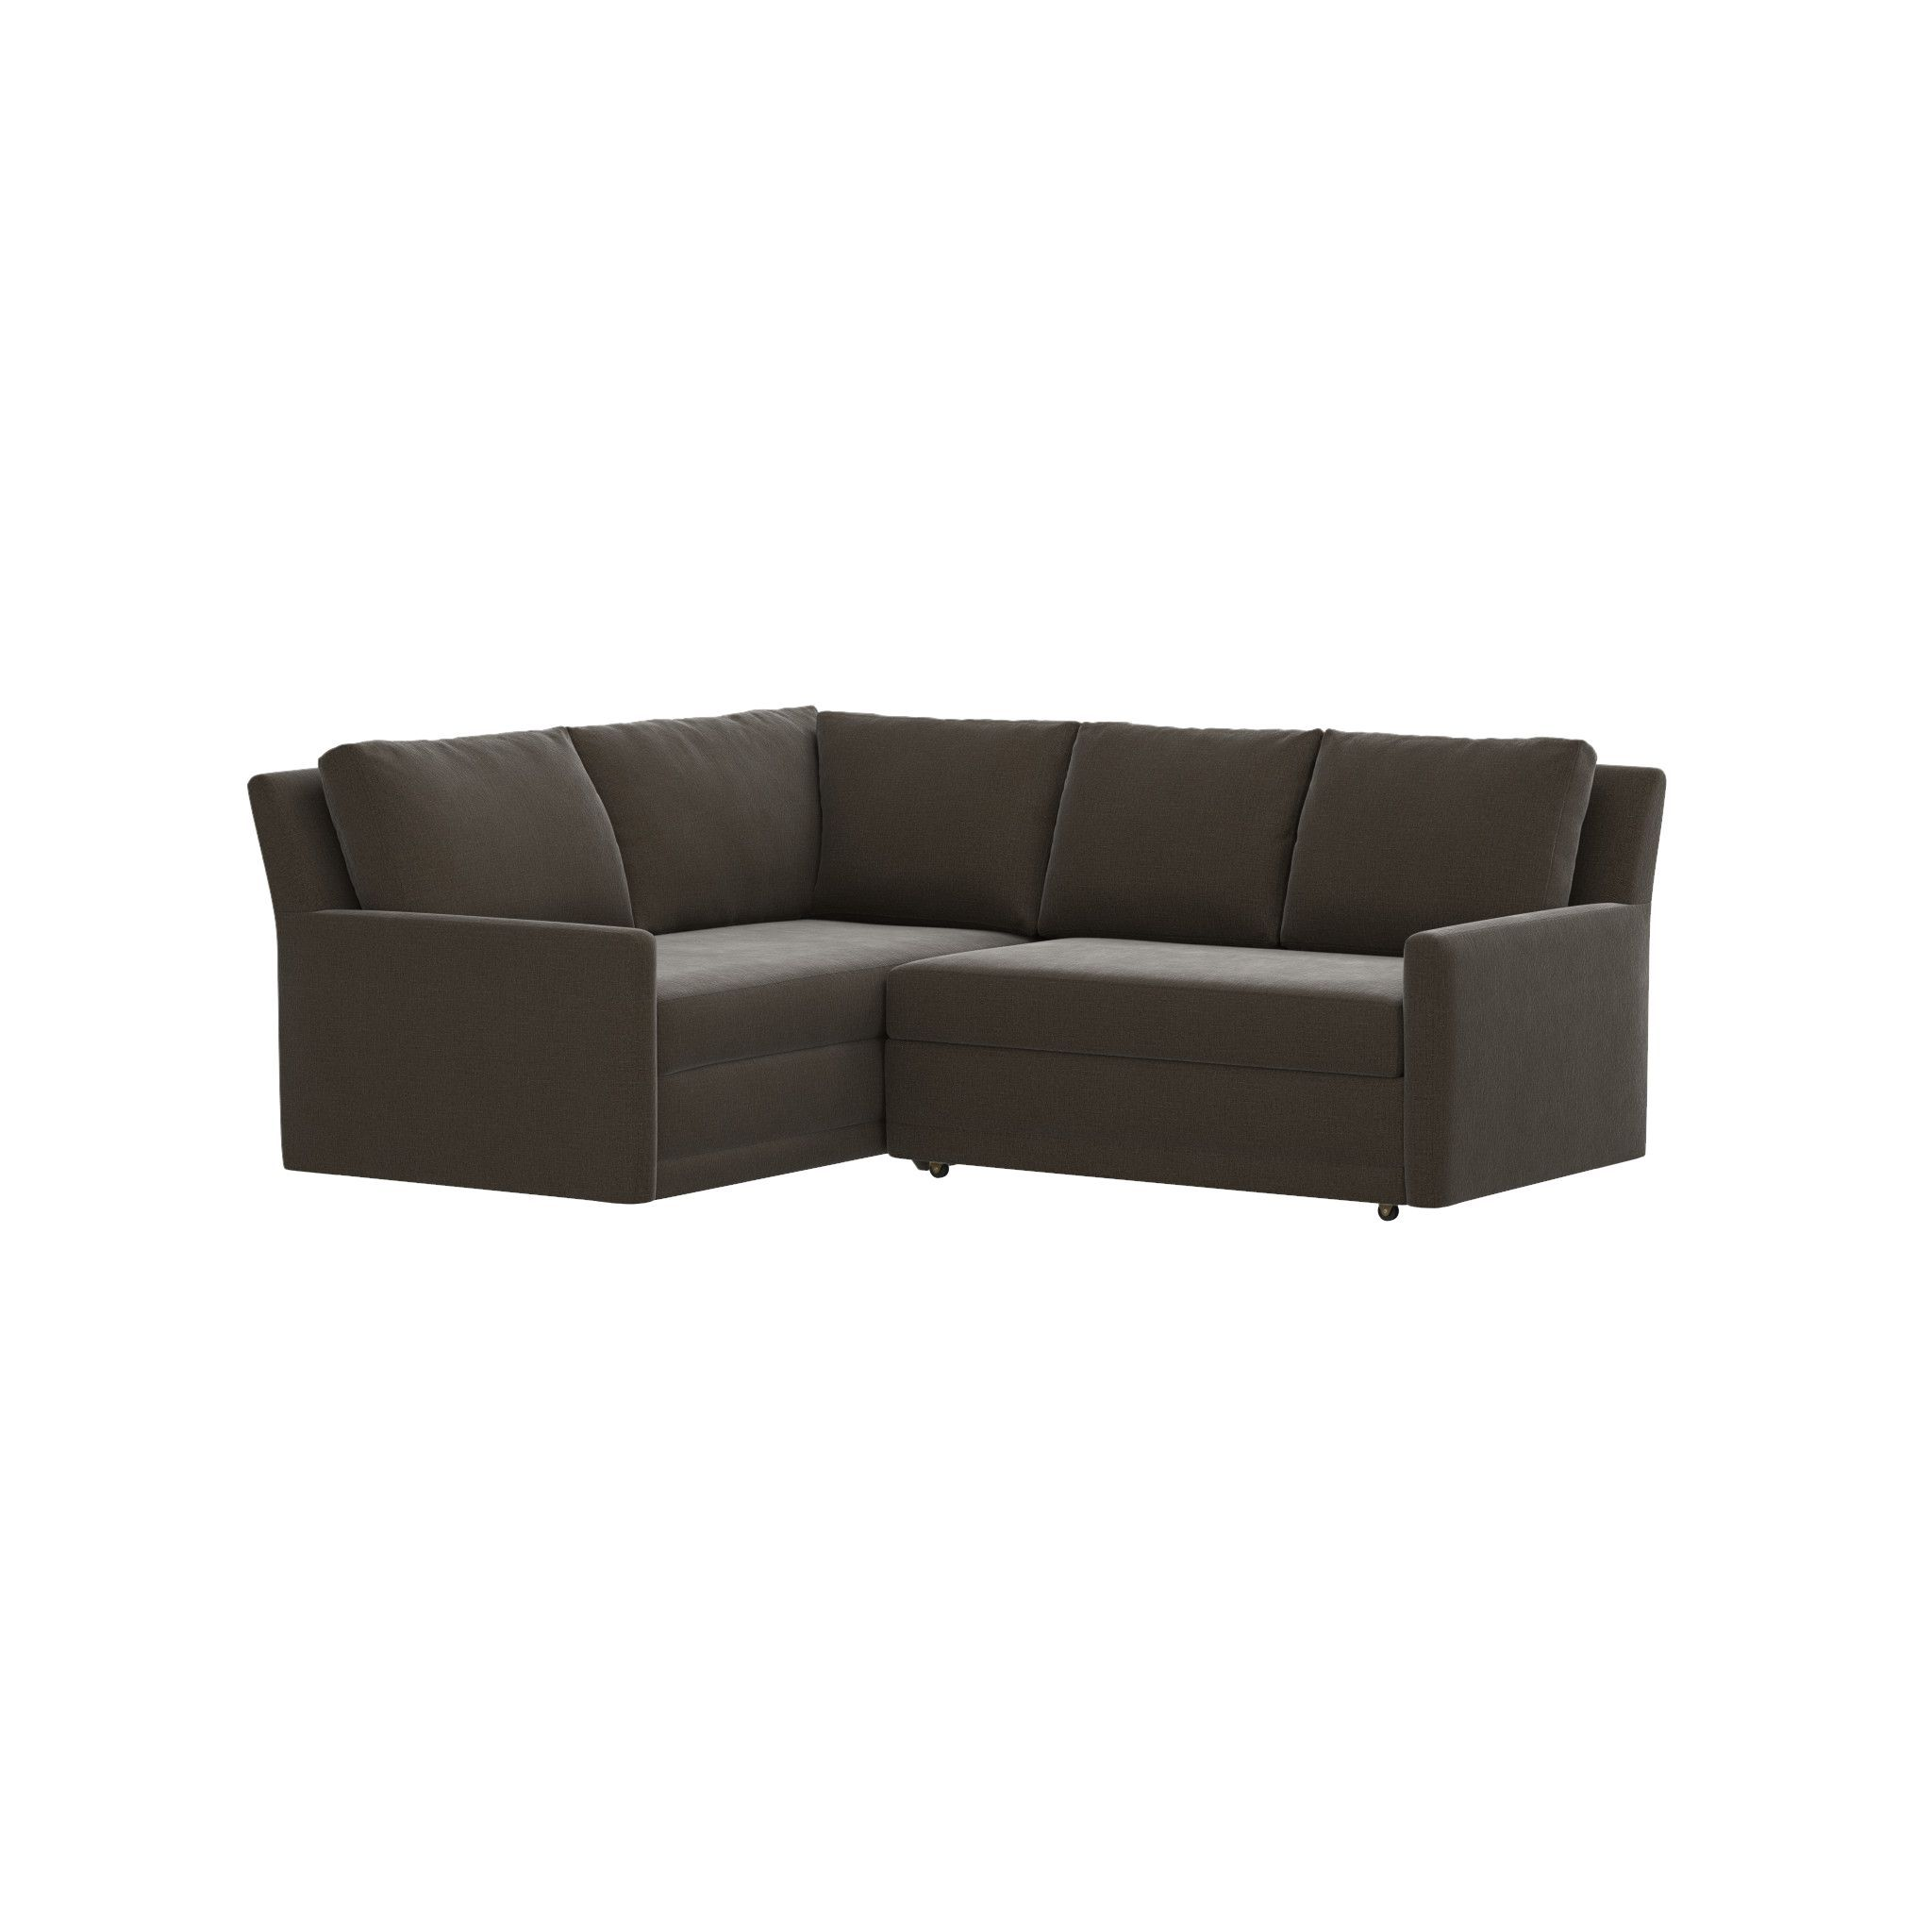 Superbe Shop Reston Sleeper Sofa With Trundle. These Classic, Clean Lined Pieces  Have An Upright, Family Room Feel With Firm Bench Cushions, Soft Back  Pillows And ...